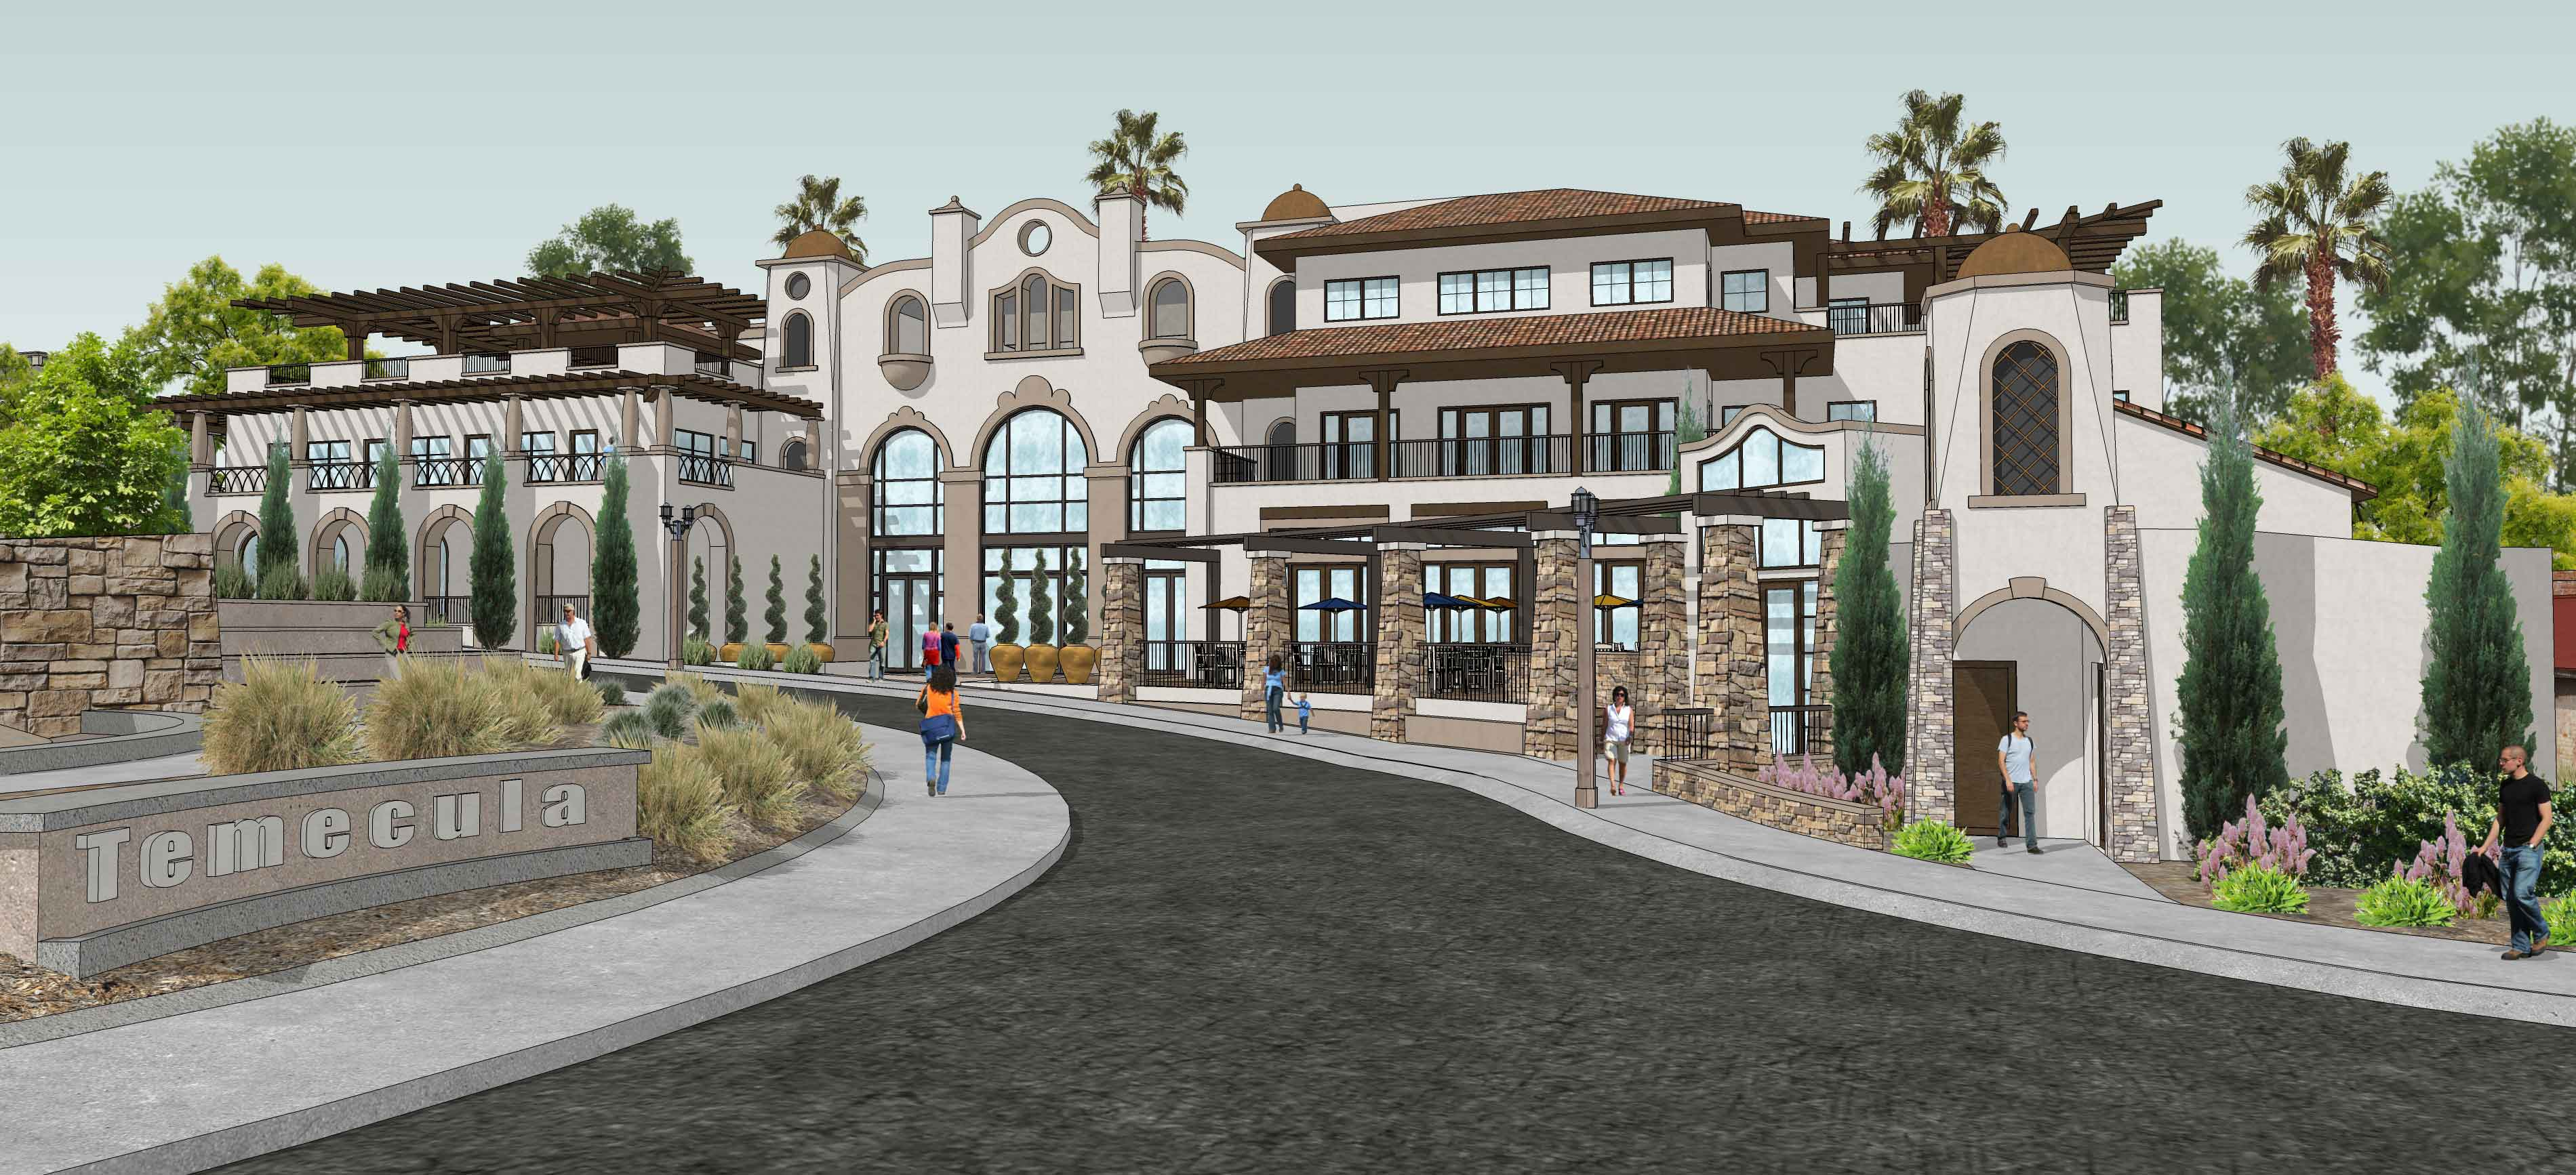 Temecula Marketplace Project